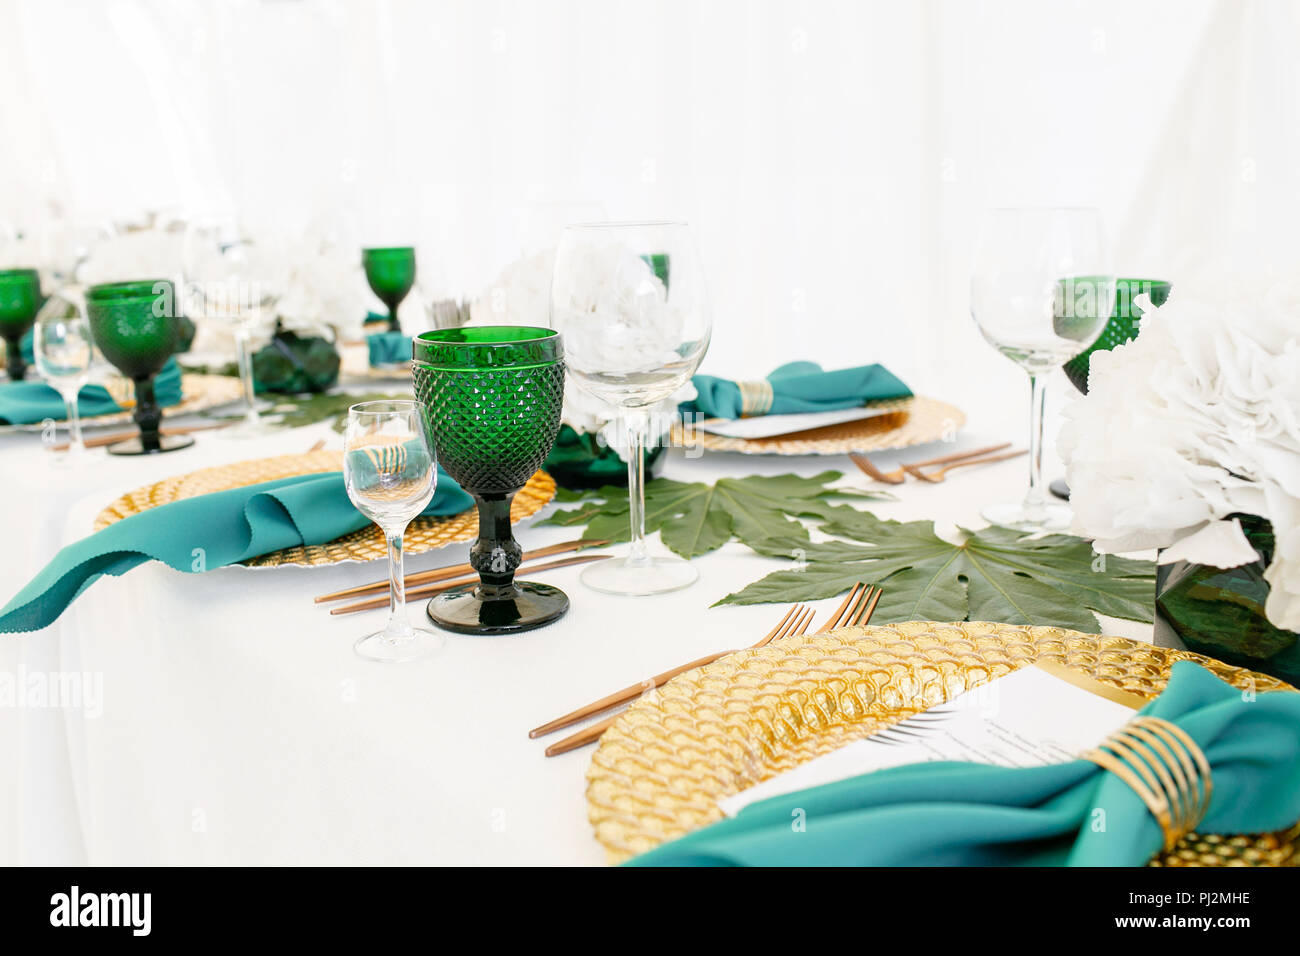 Interior of tent for wedding diner, ready for guests. Served round banquet table outdoor in marquee decorated hydrangea flowers, Golden dishes and green napkins. Catering concept - Stock Image